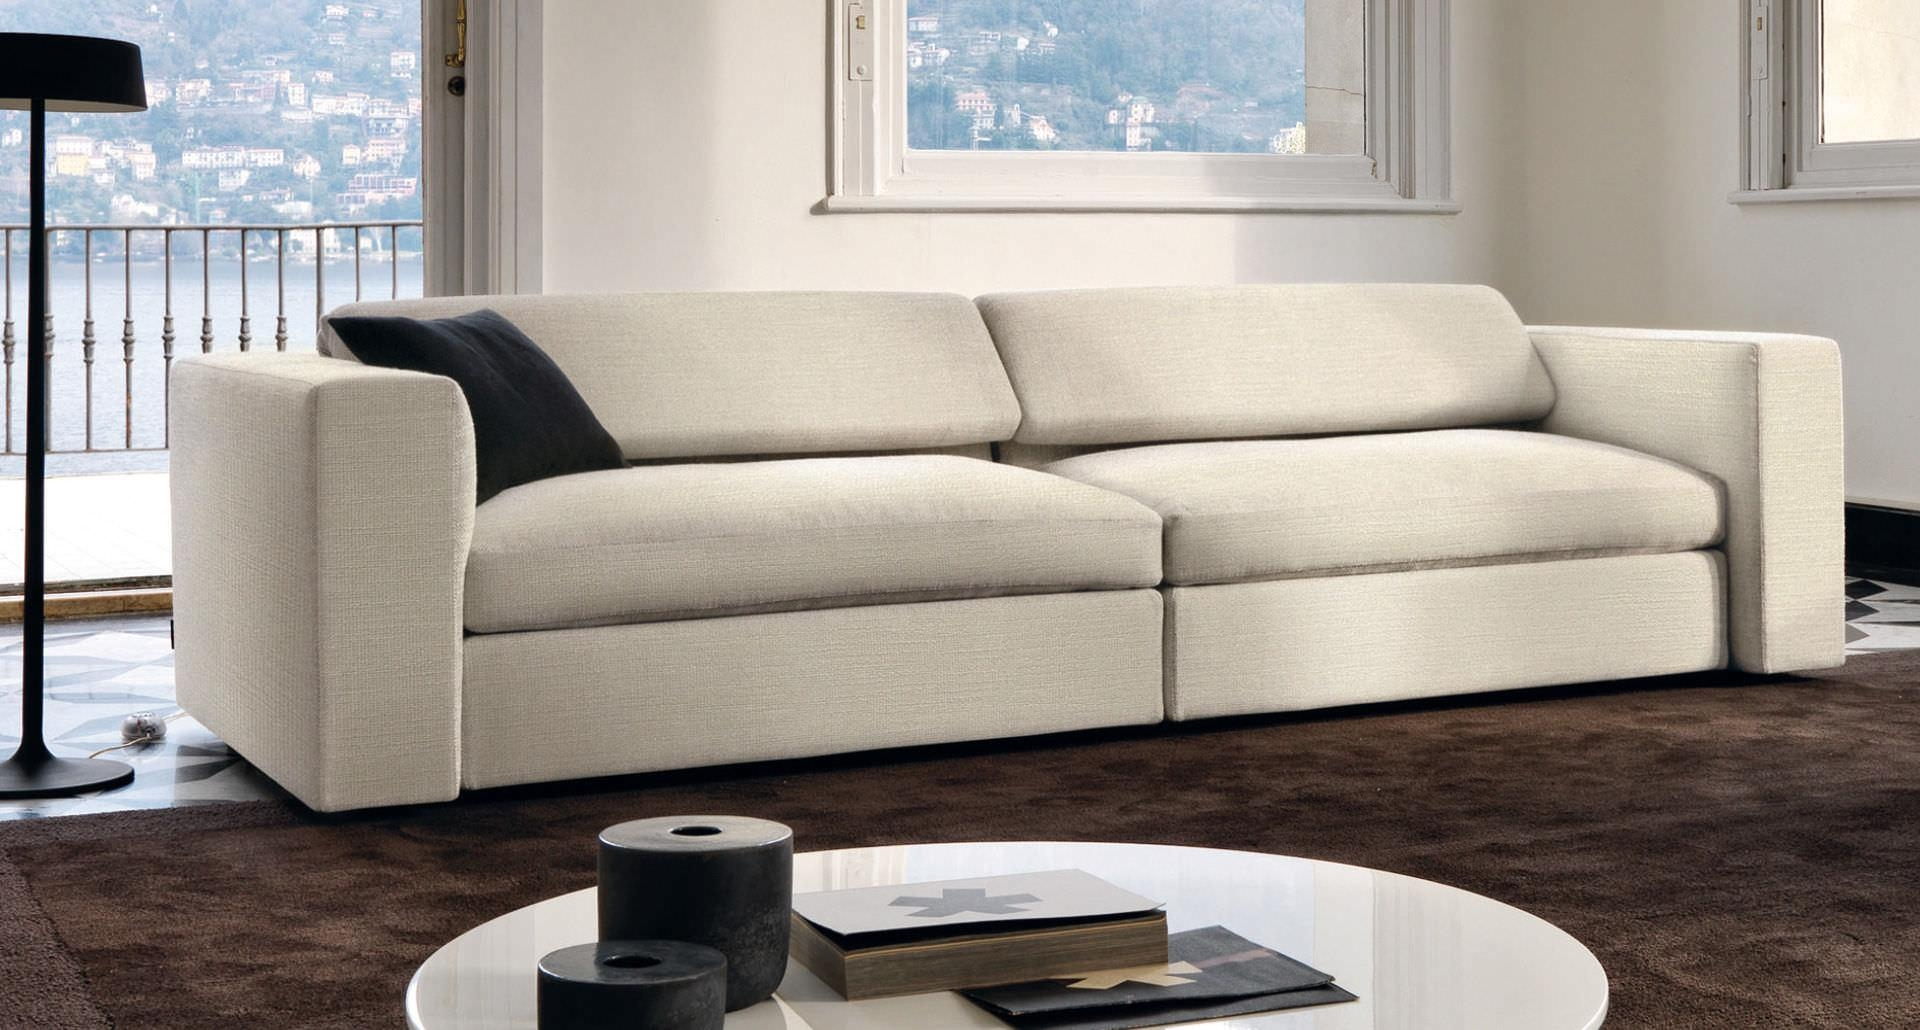 Sofas Center : Modern Loveseater Sofa Furnituremodern Sectional Throughout Italian Recliner Sofas (Image 16 of 20)